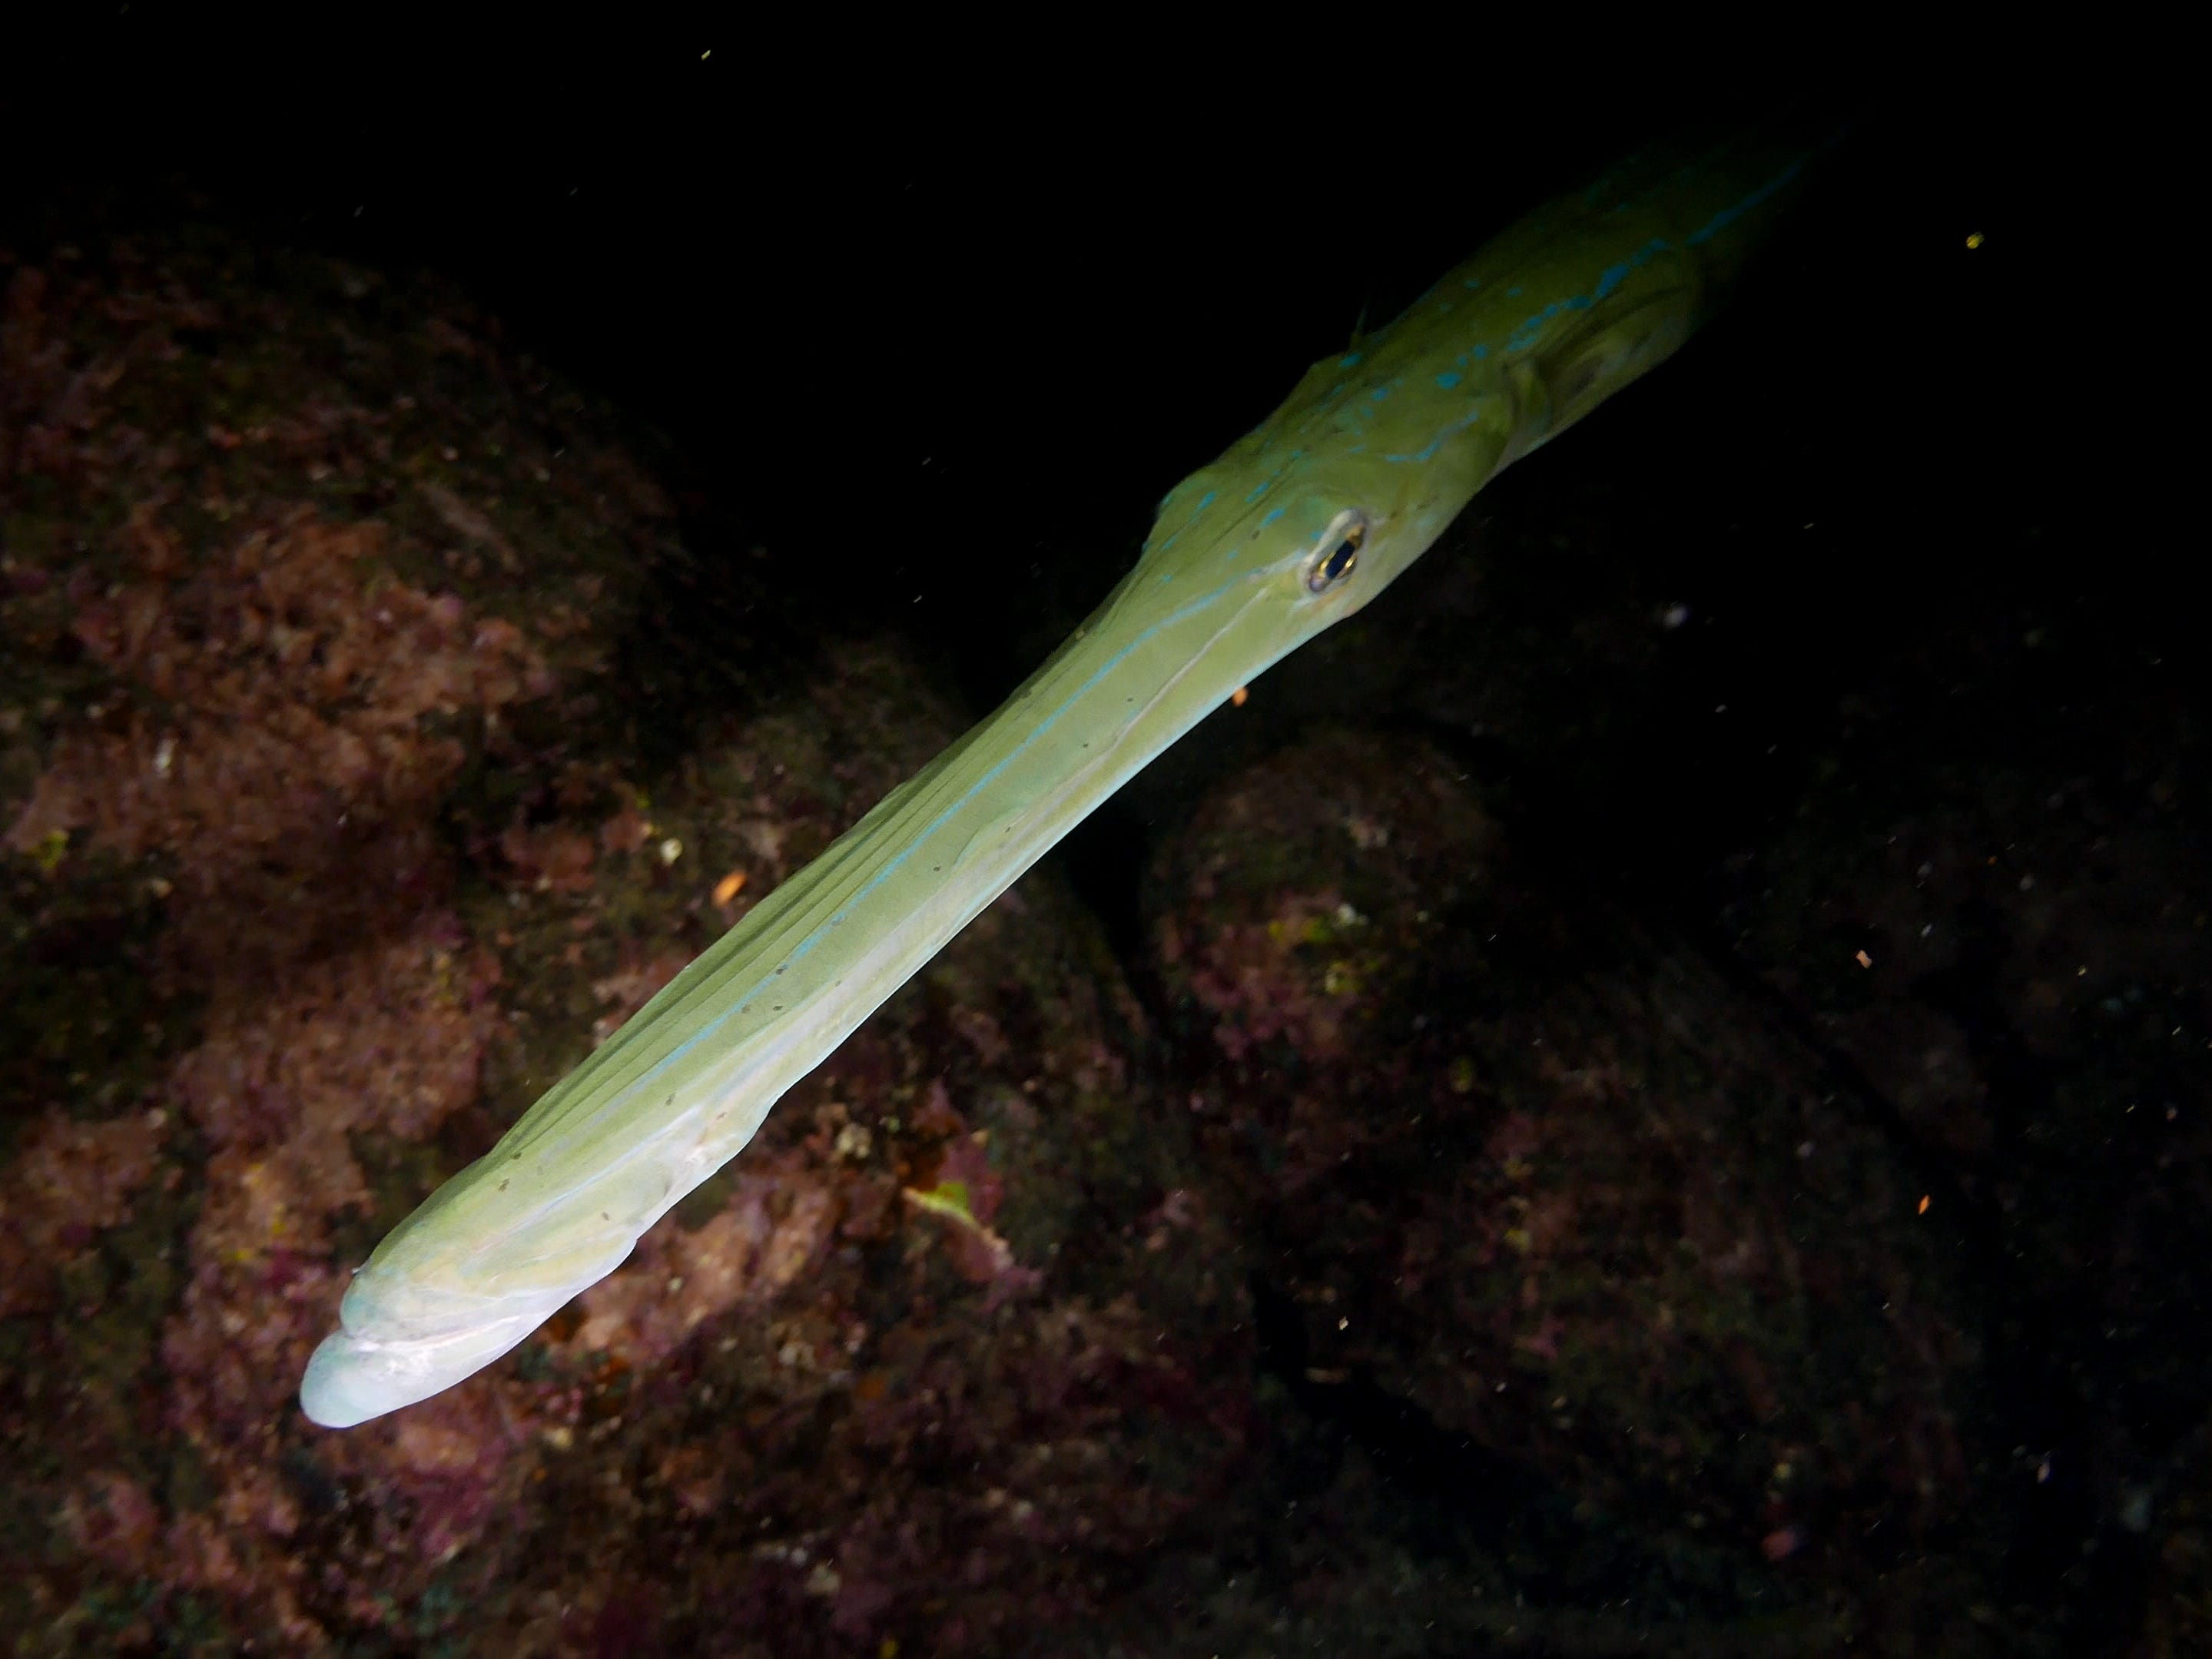 A trumpetfish in the Galapagos Islands, Ecuador.